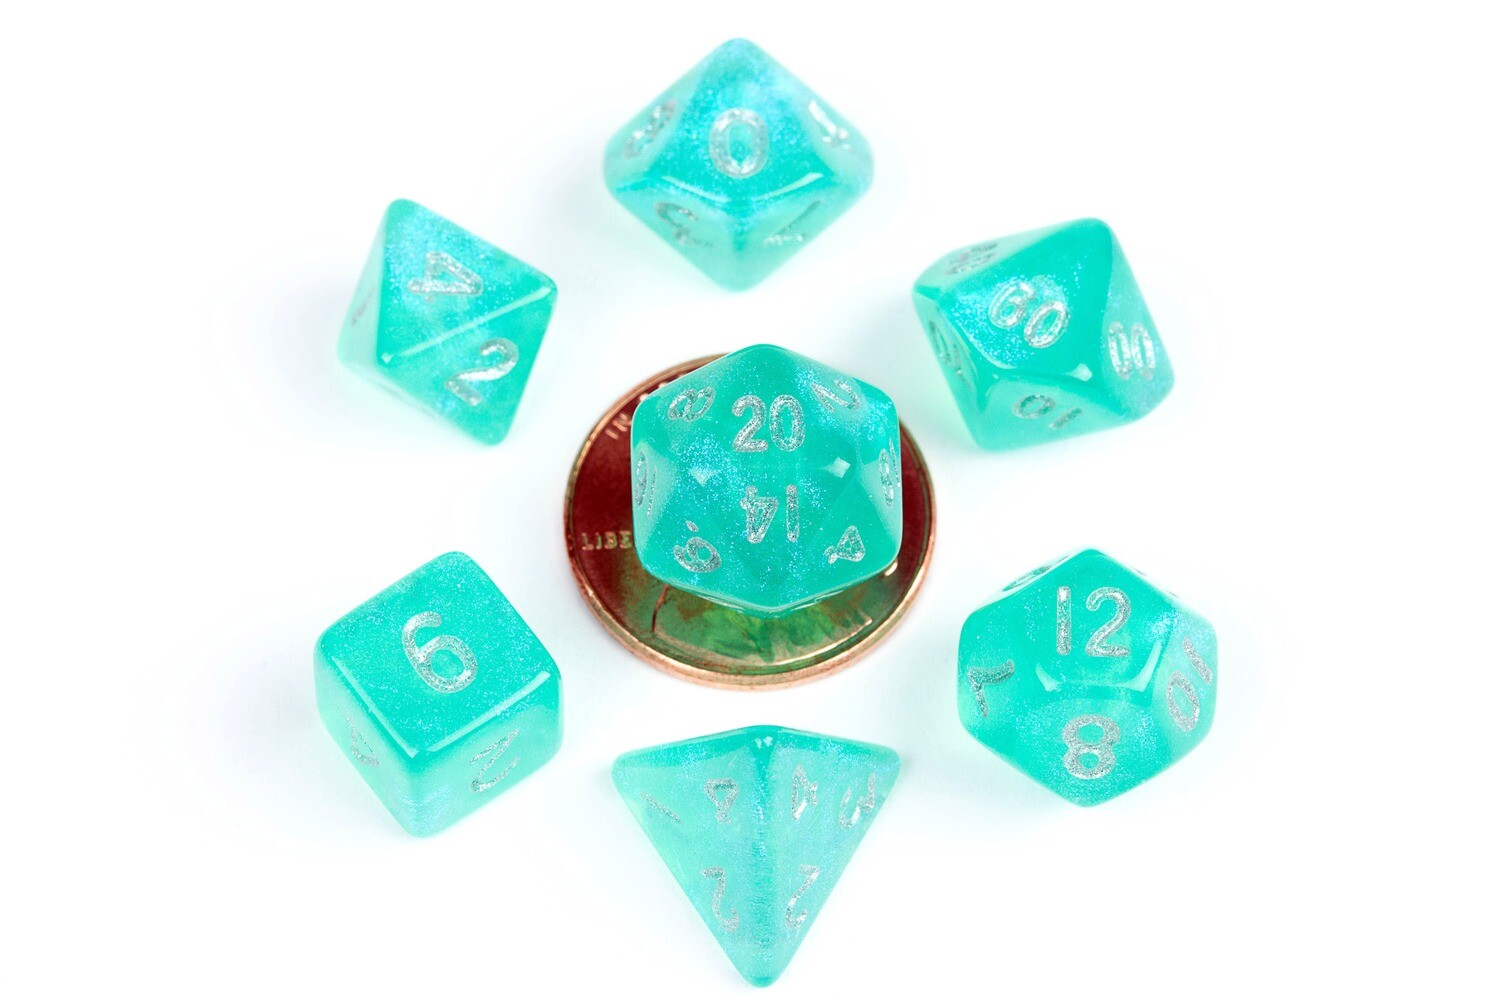 Stardust Teal 10mm Mini Poly Dice Set RPG Tabletop Gaming Roleplay Cards Board Games